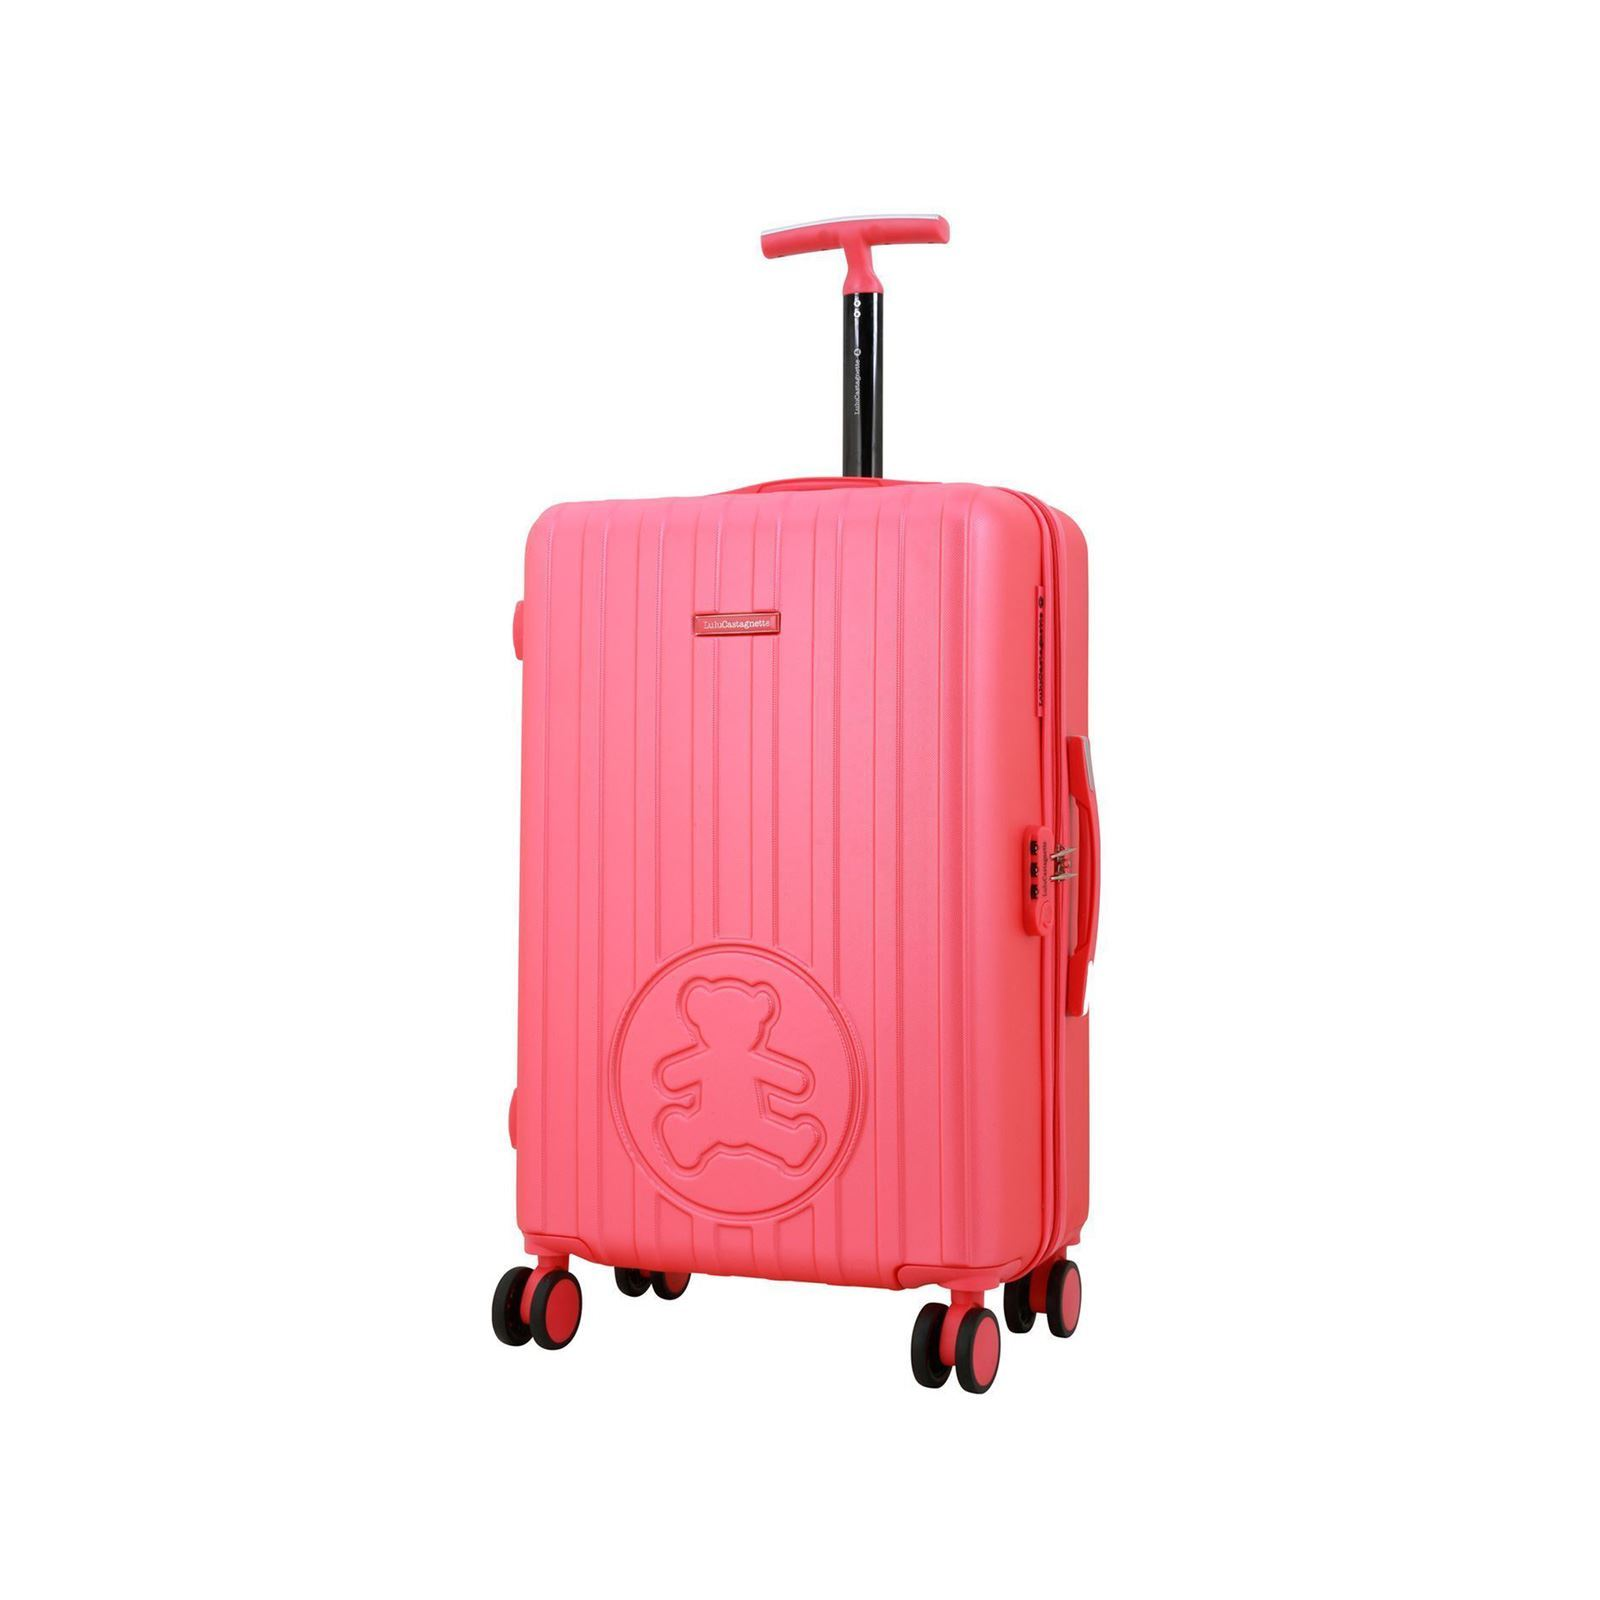 lulu castagnette valise trolley 60 cm rose brandalley. Black Bedroom Furniture Sets. Home Design Ideas